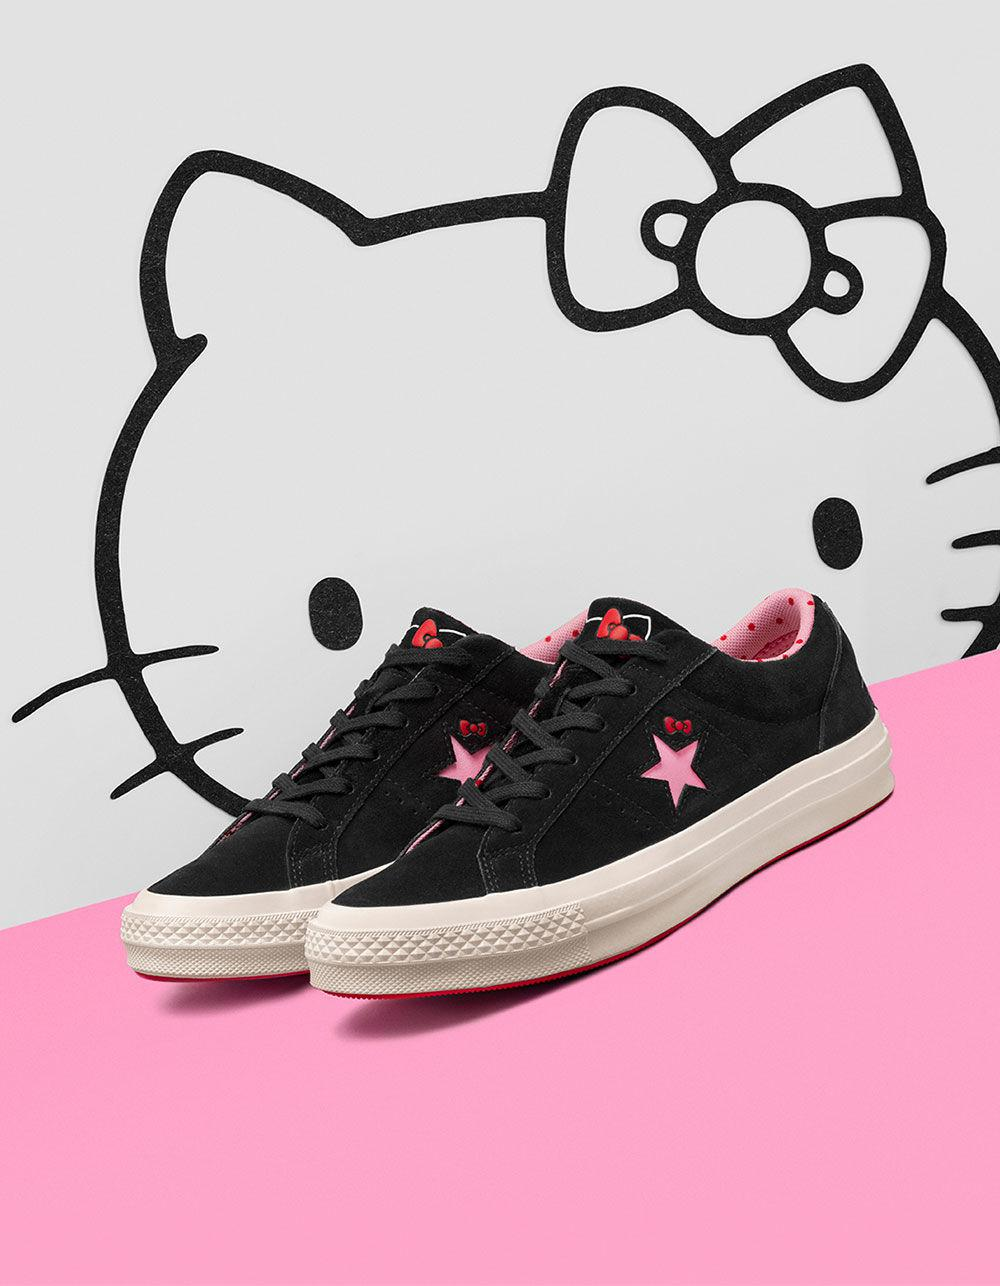 c5aea6cd51330d Converse - X Hello Kitty One Star Black   Prism Pink Womens Shoes - Lyst.  View fullscreen